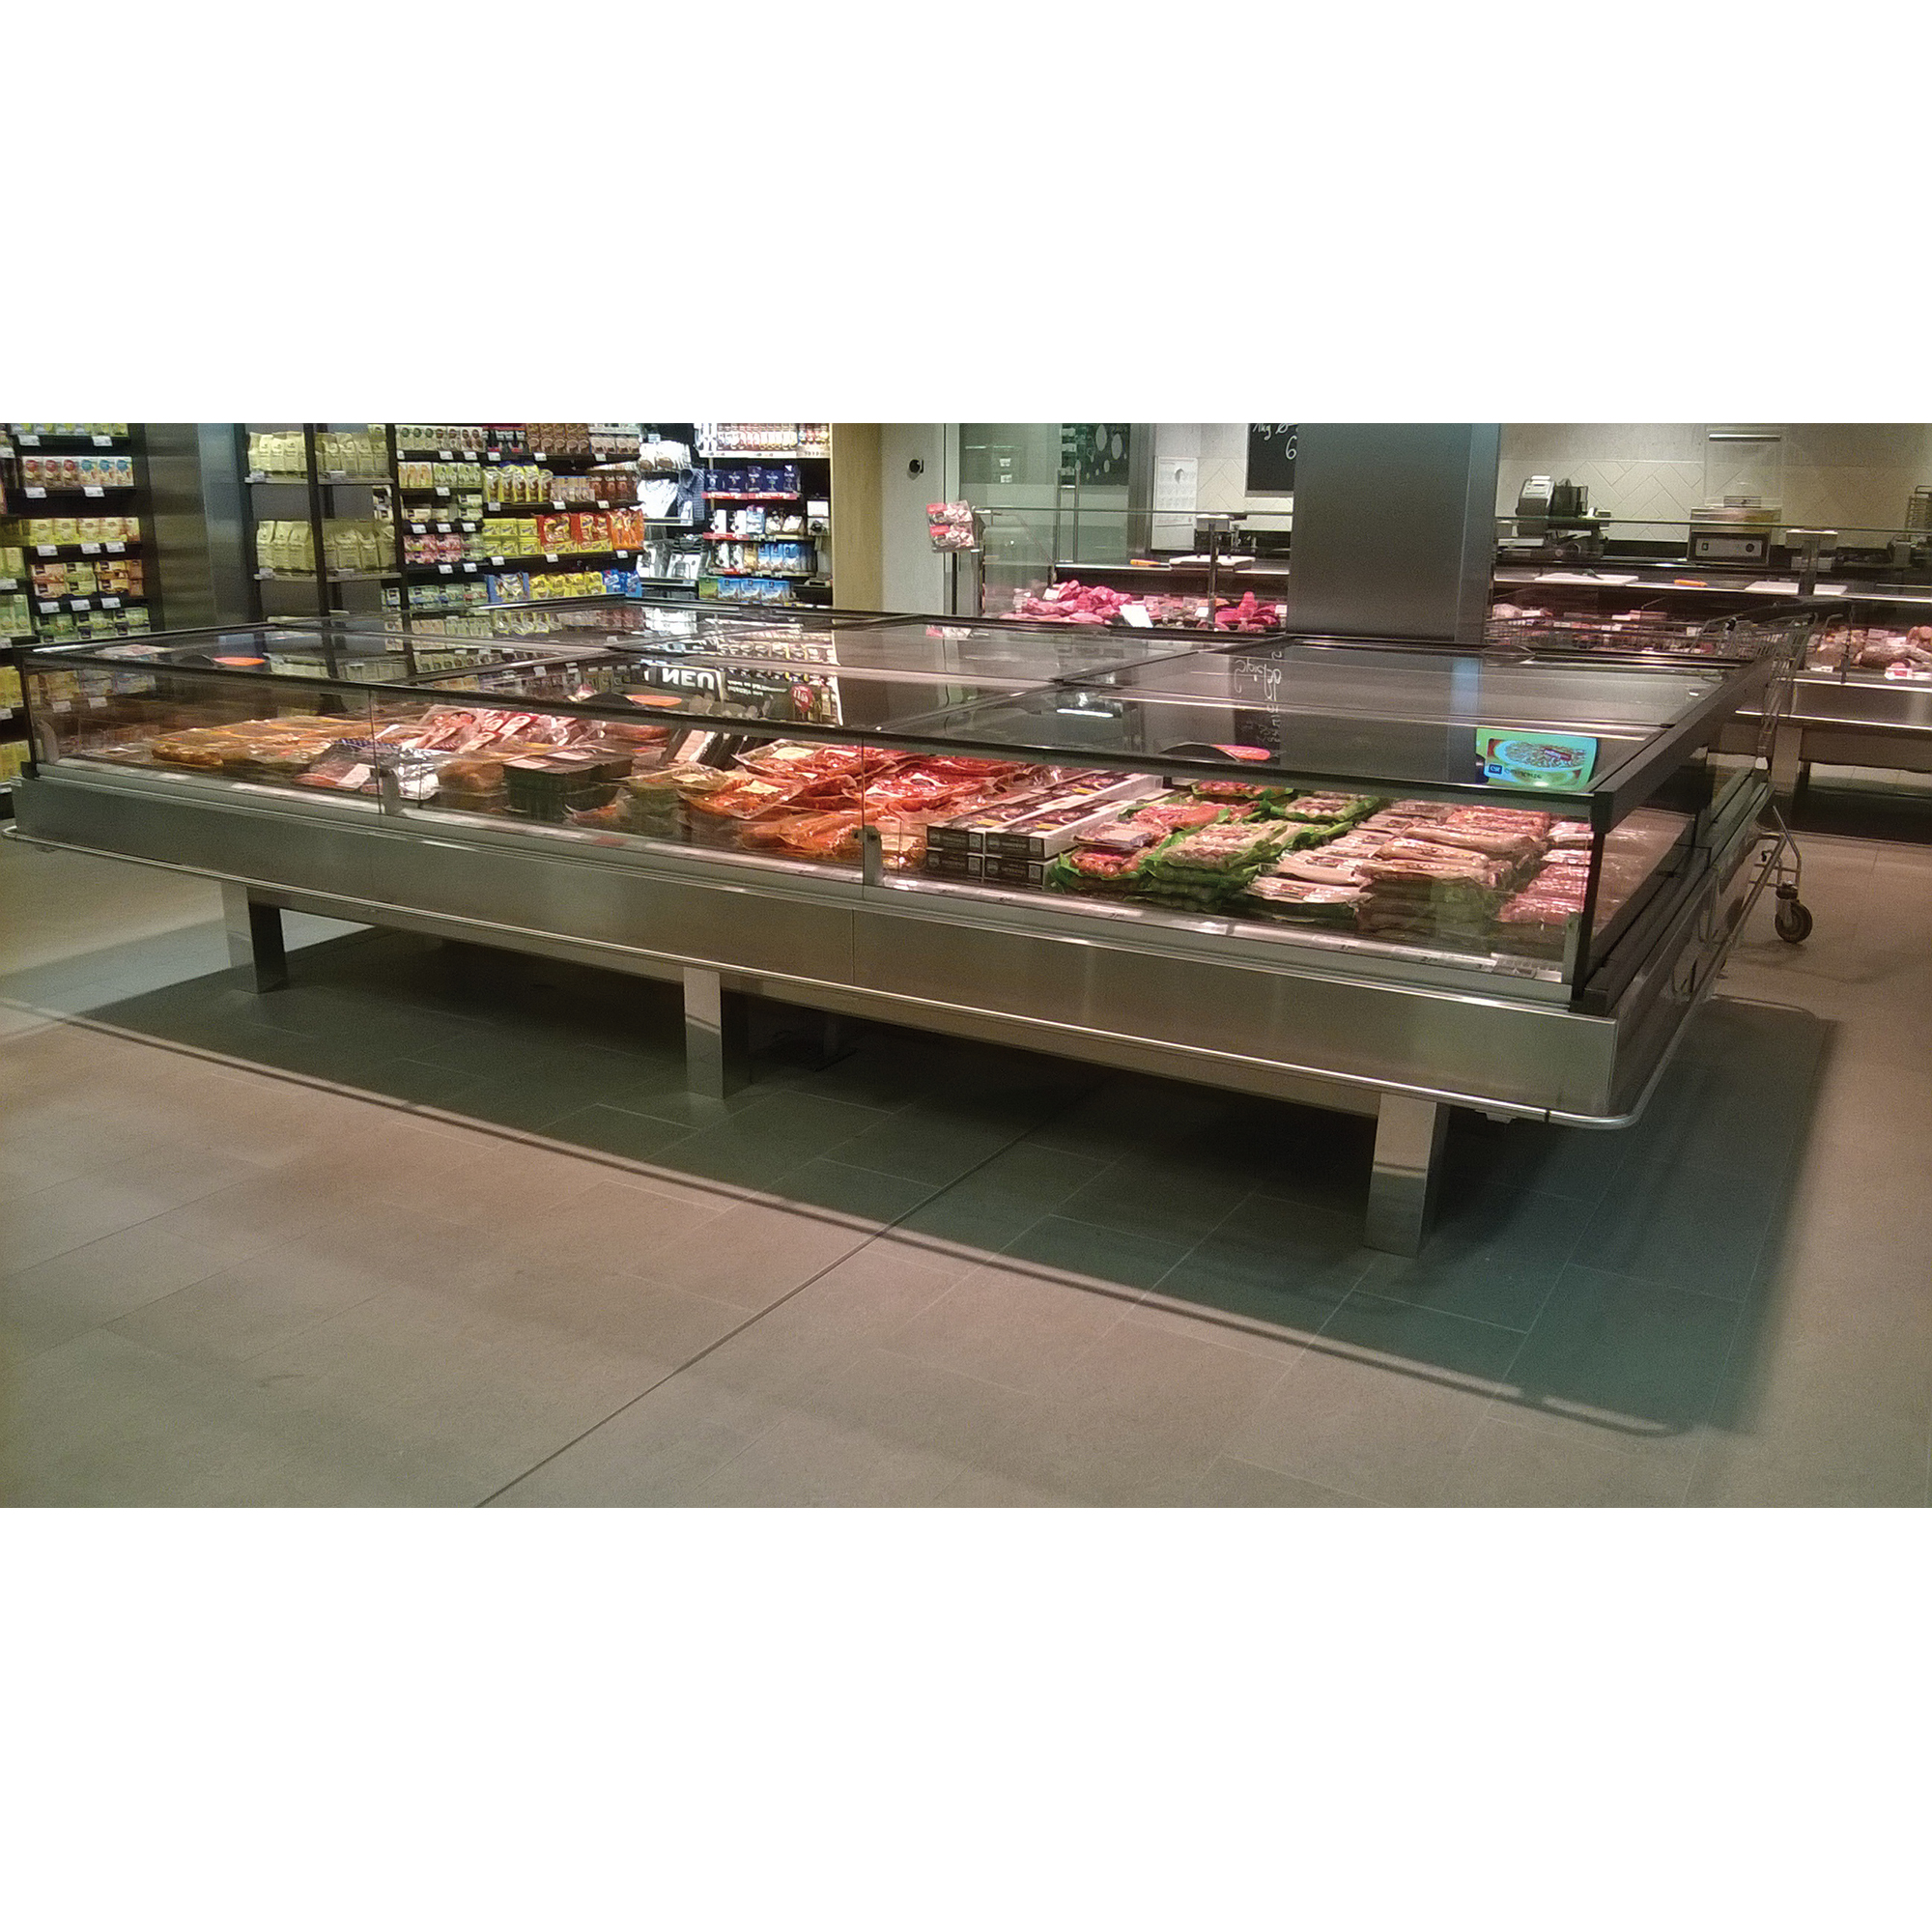 refrigerated-counter-danaos-panorama-E